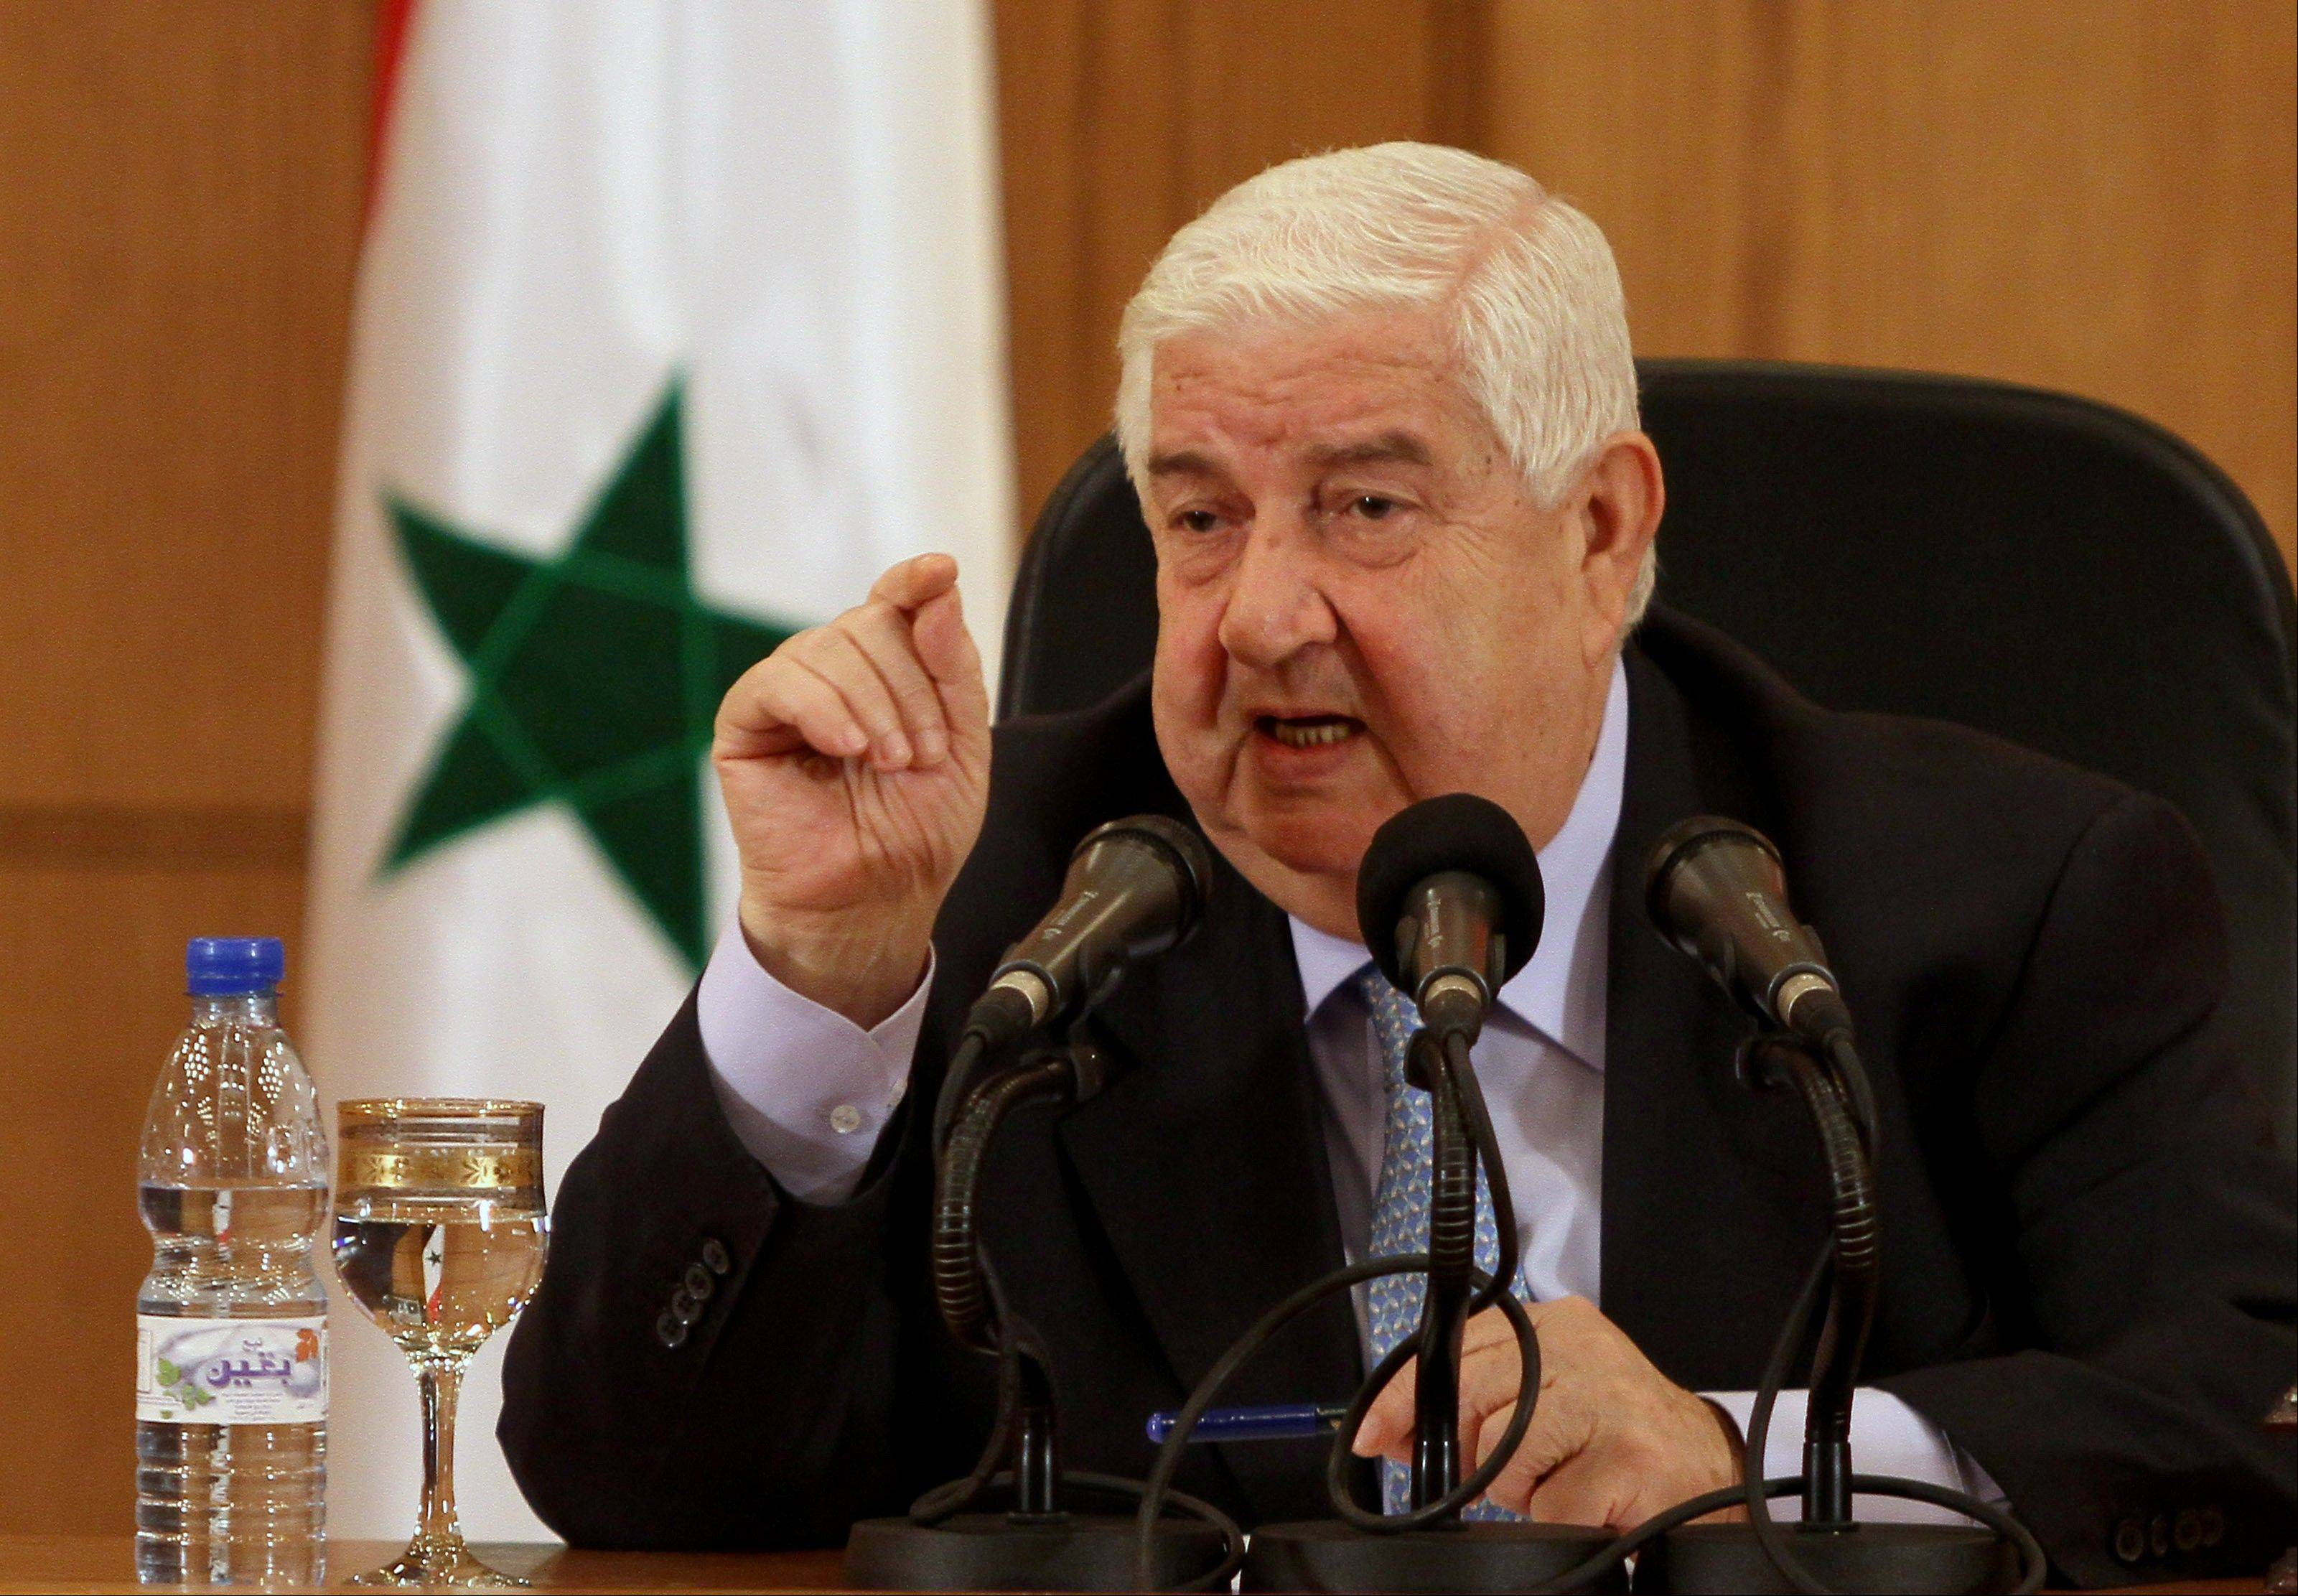 Syrian Foreign Minister Walid al-Moallem said Tuesday his country would defend itself using �all means available� in case of a U.S. strike, denying his government was behind an alleged chemical weapons attack near Damascus and challenging Washington to present proof backing up its accusations.